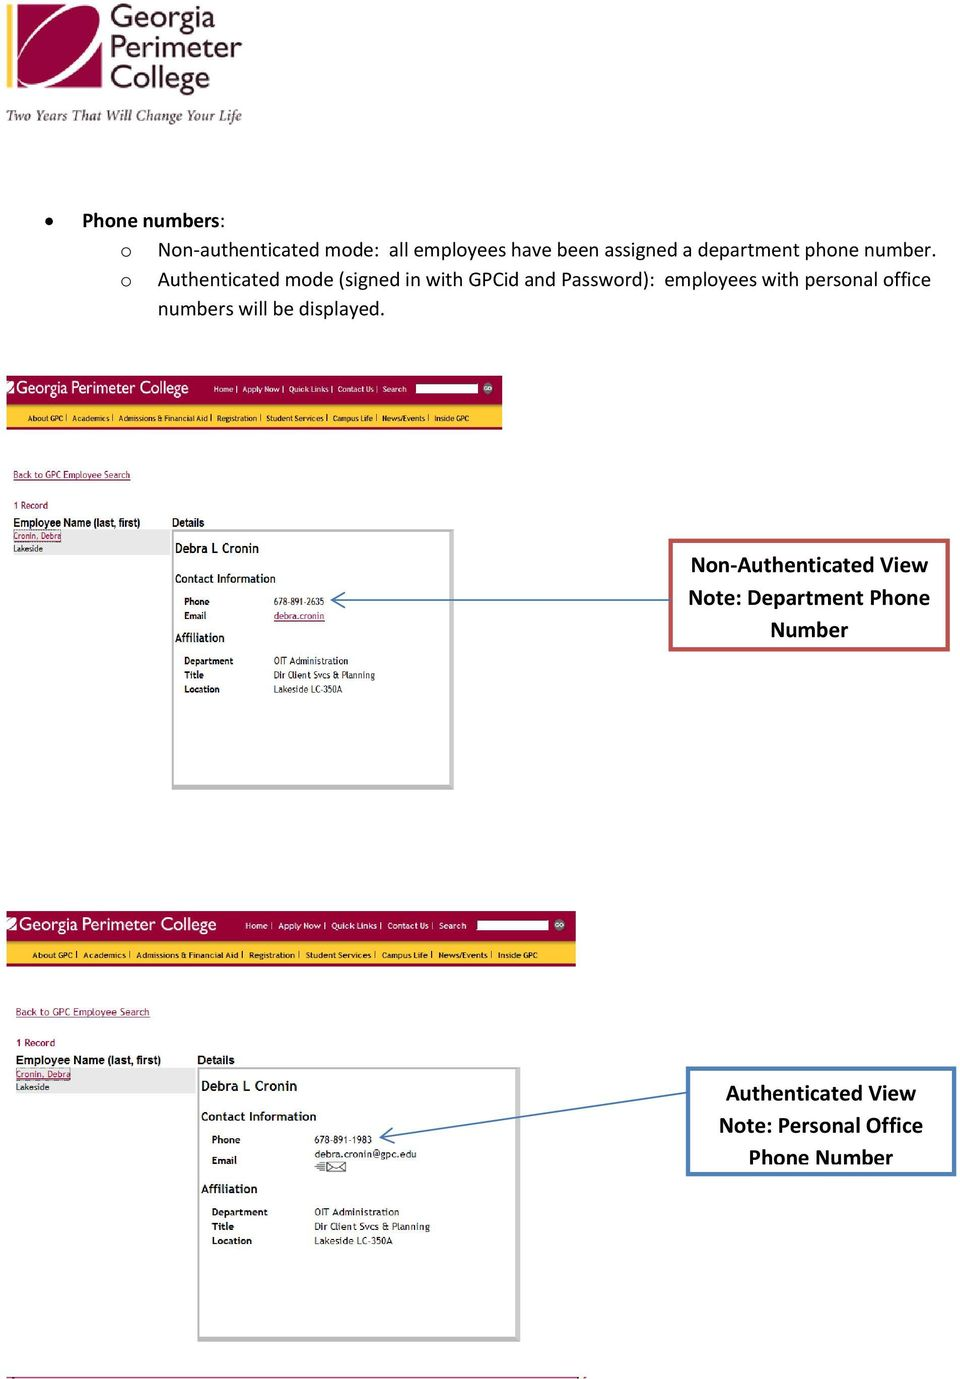 o Authenticated mode (signed in with GPCid and Password): employees with